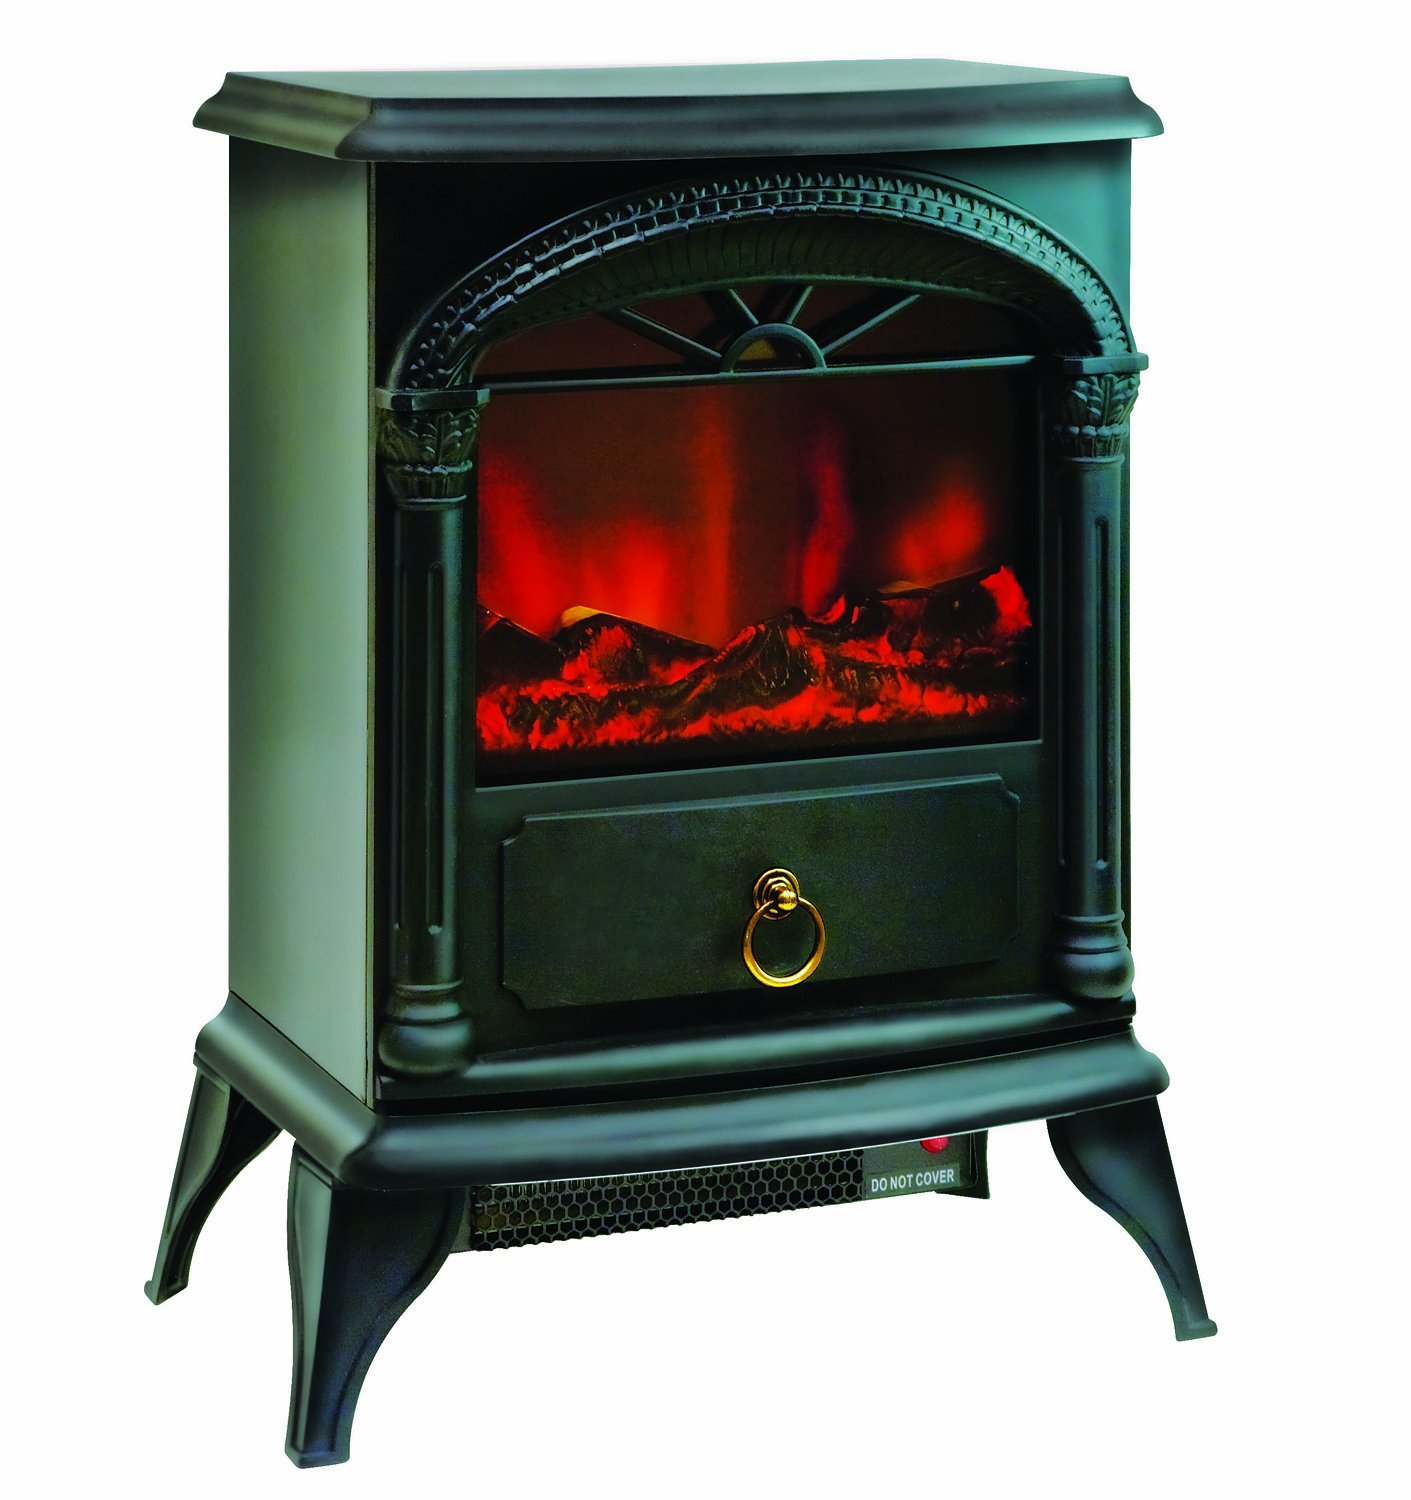 "Amazon.com: Comfort Zone Electric ""Stove Style"" Fireplace Heater: Home & Kitchen"